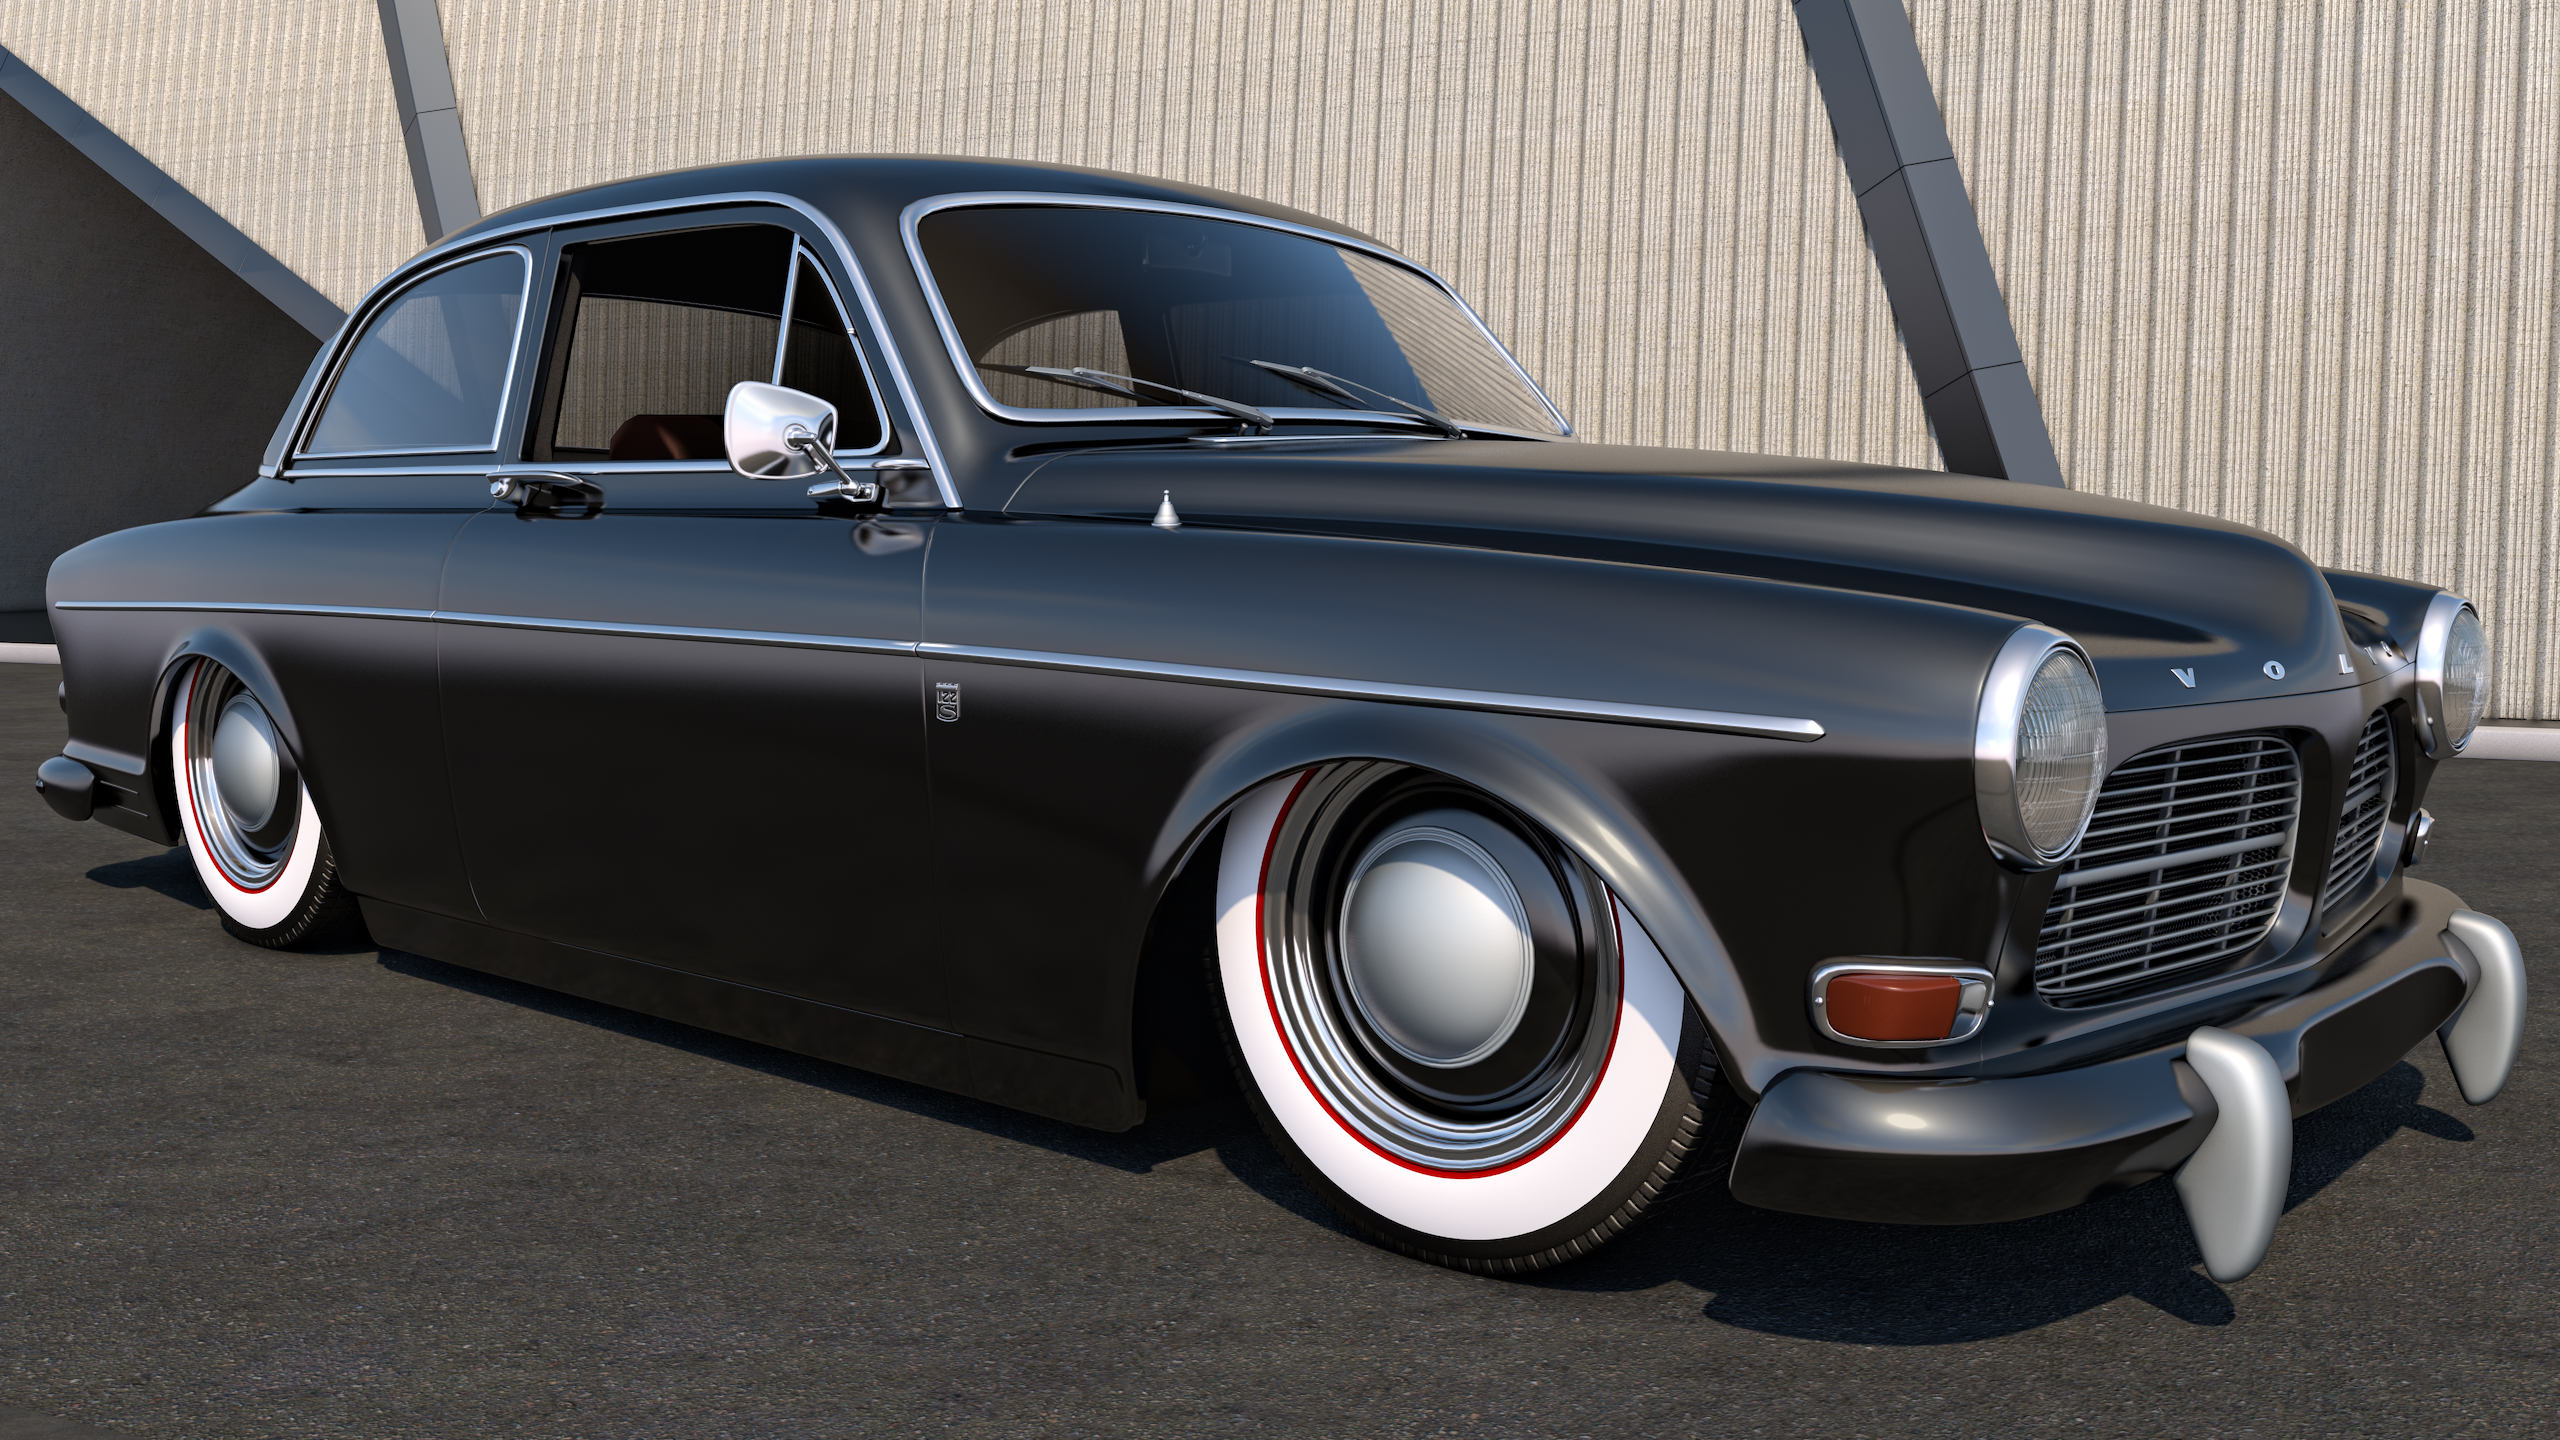 1961 Volvo Amazon Coupe By Samcurry On Deviantart